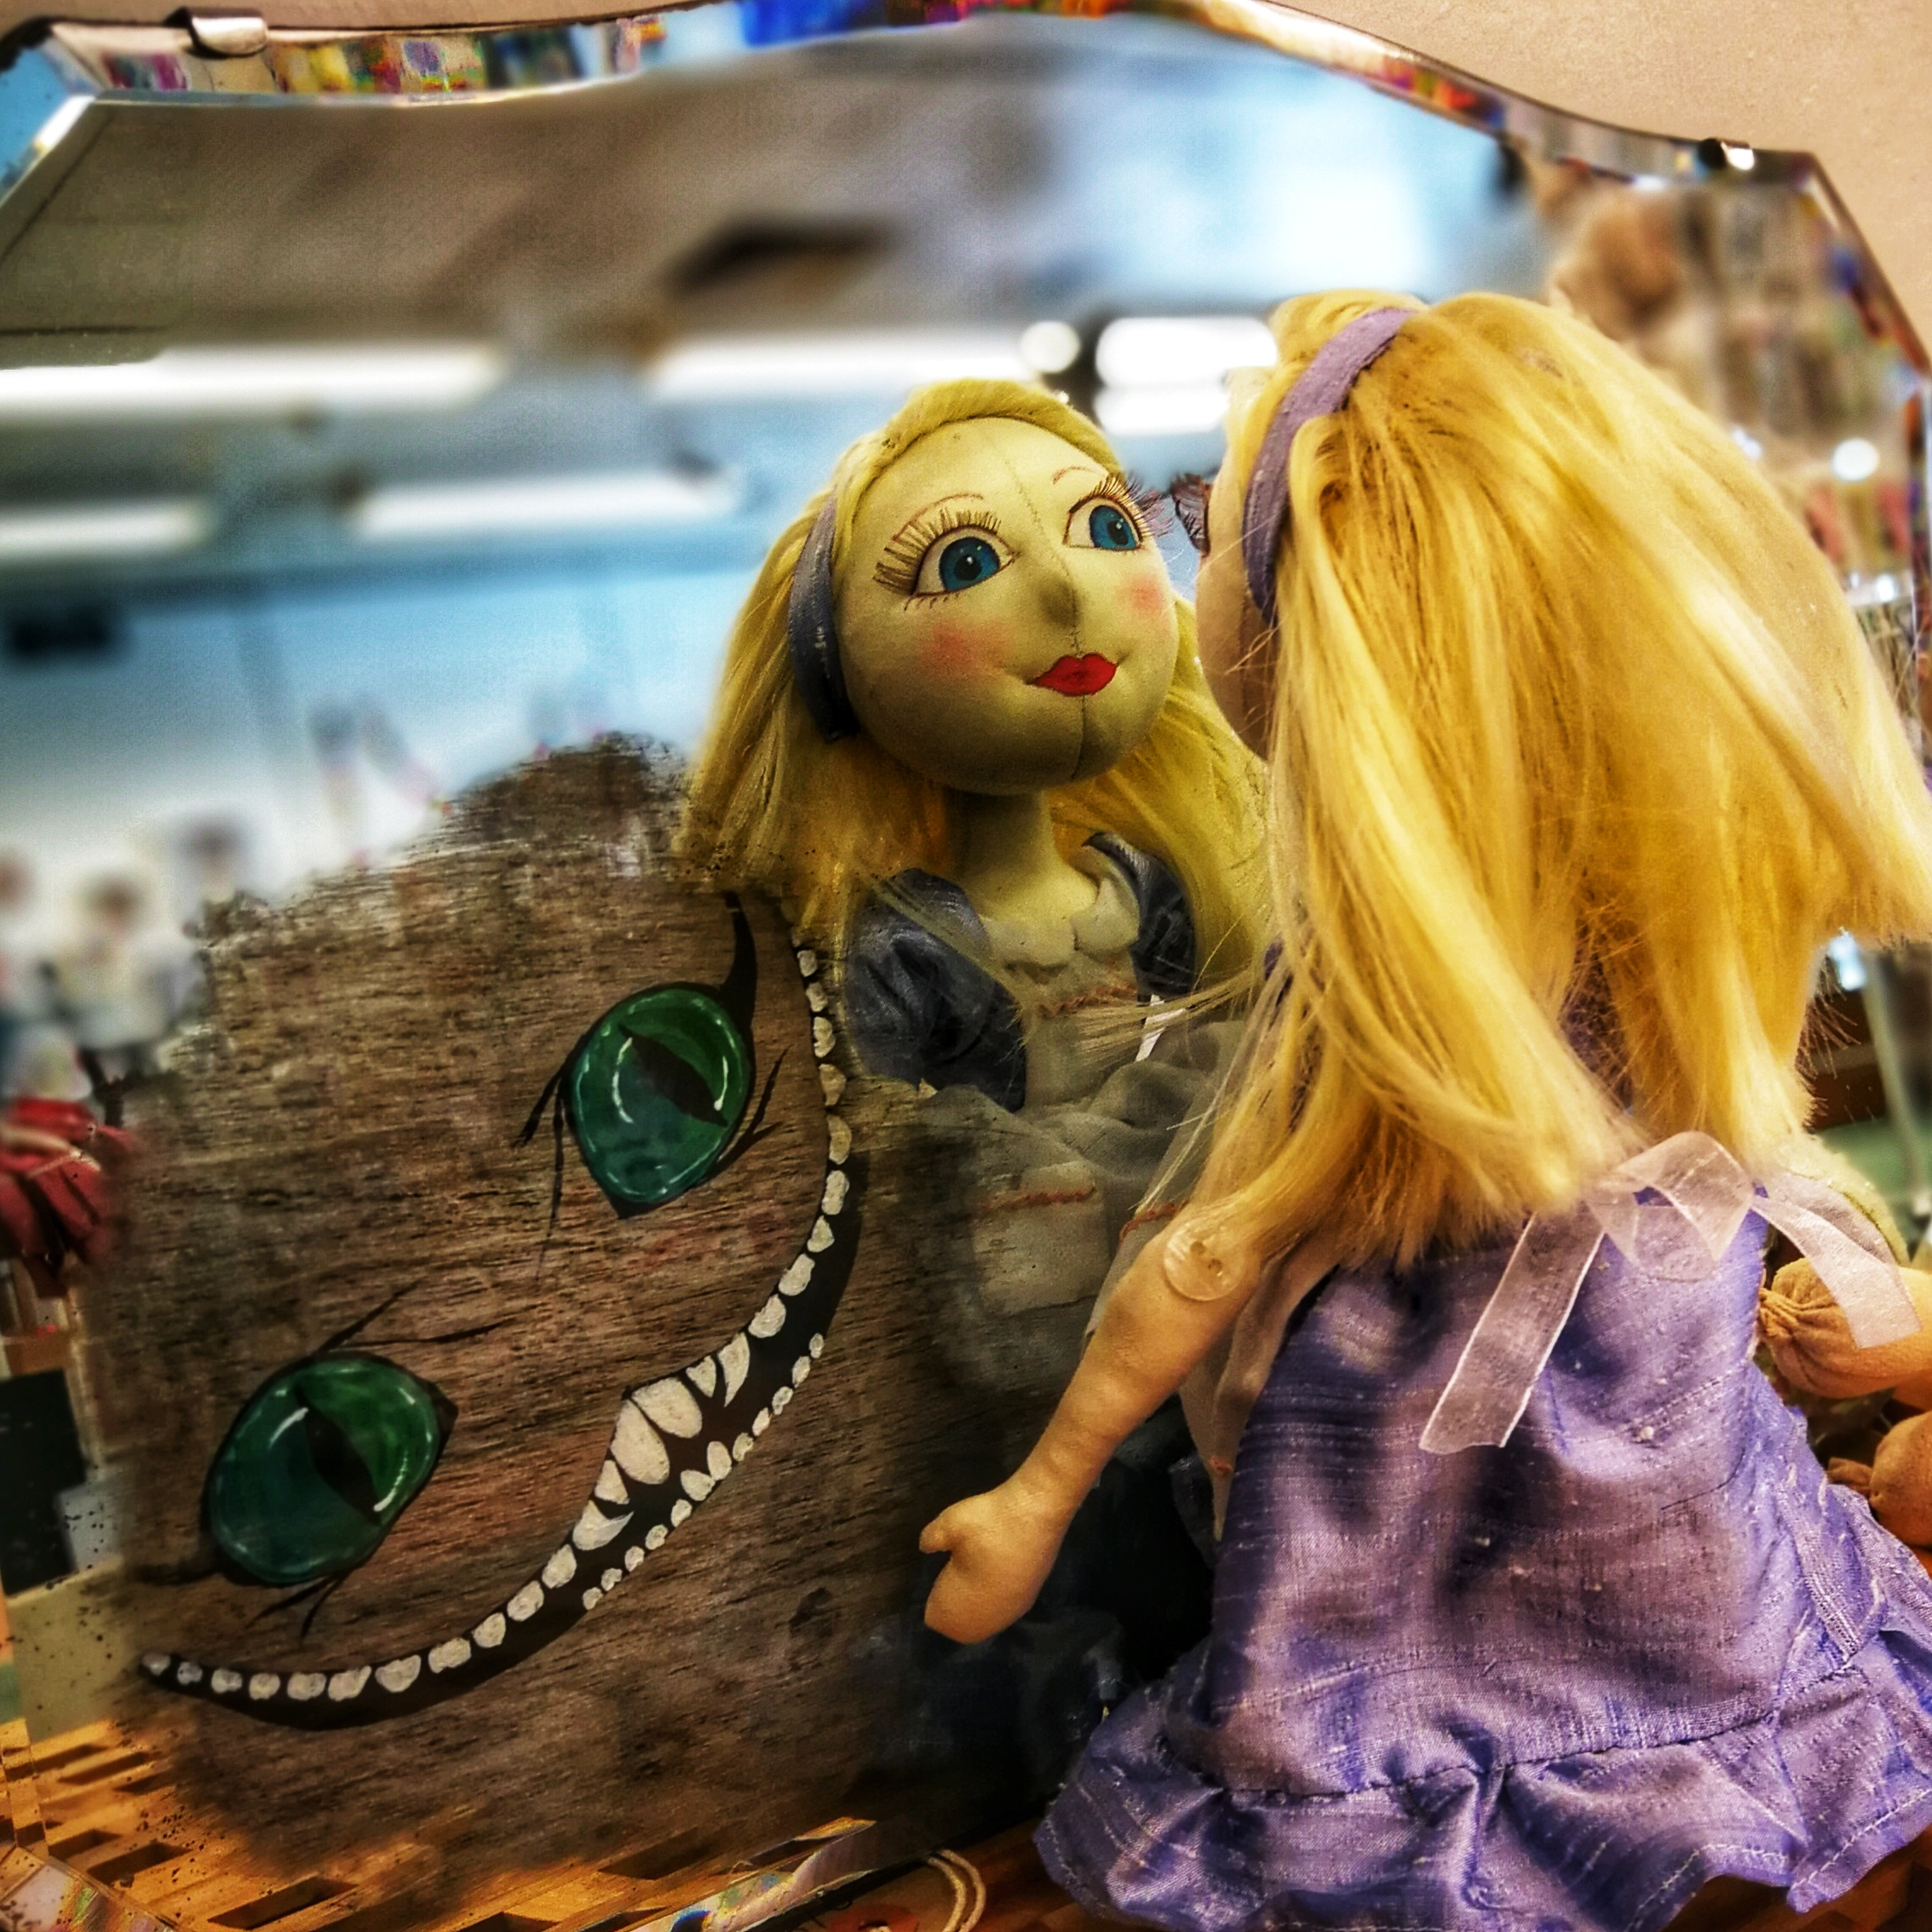 Alice looking through the looking glass